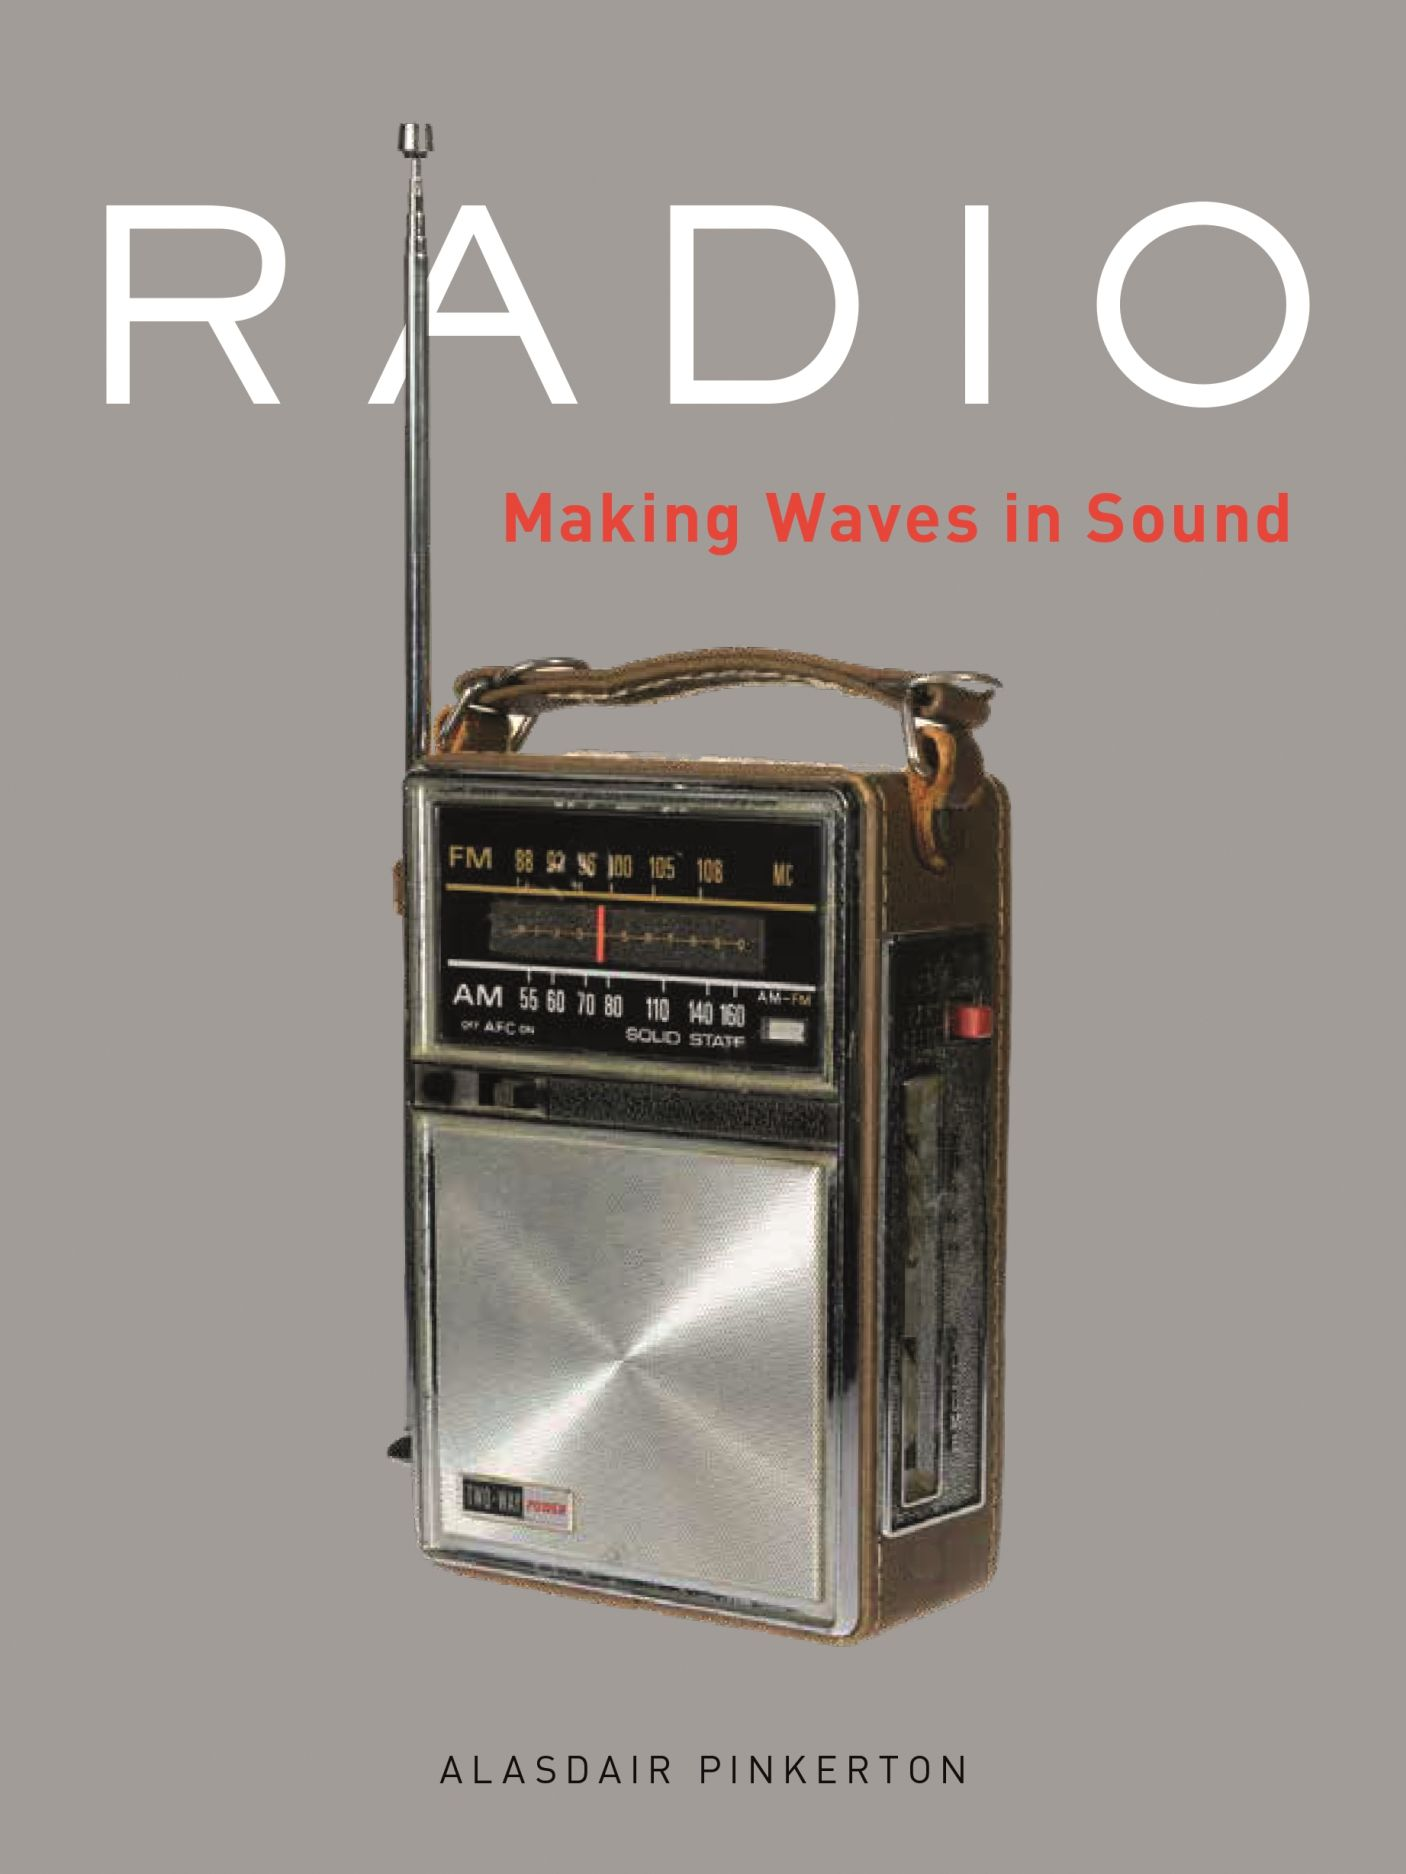 Radio: Making Waves in Sound